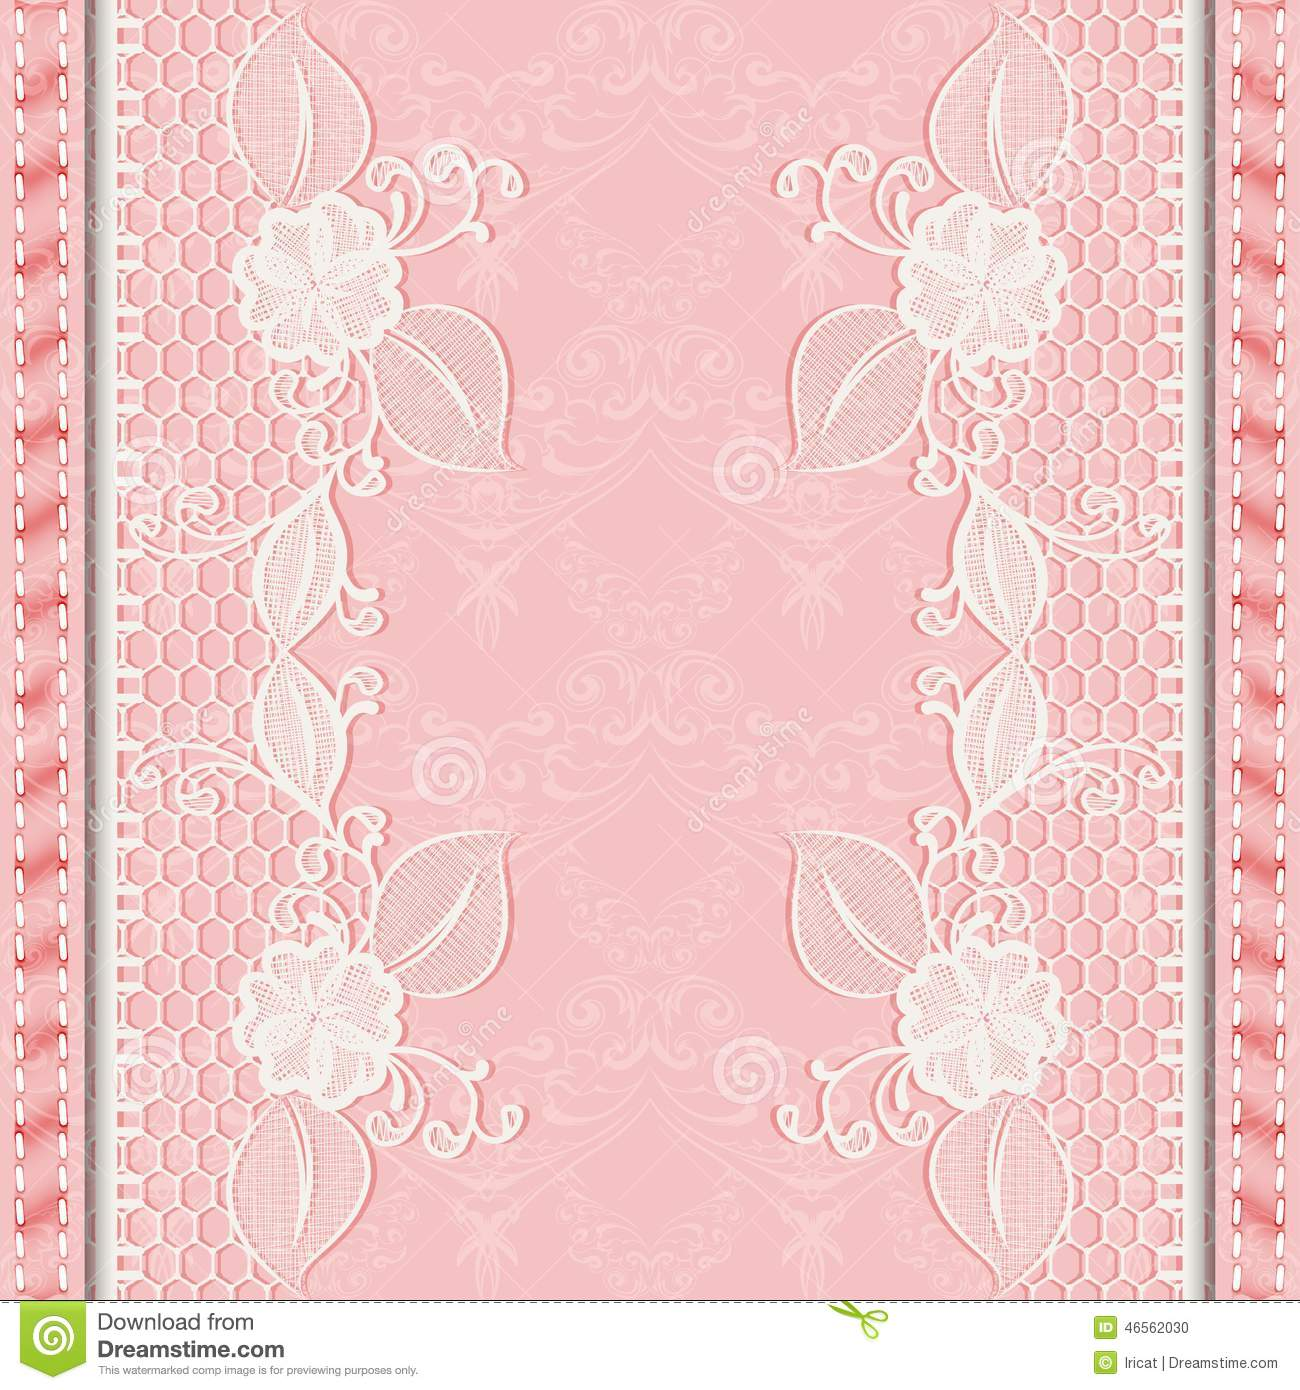 Template Greeting Or Invitation Card With Lace Fabric